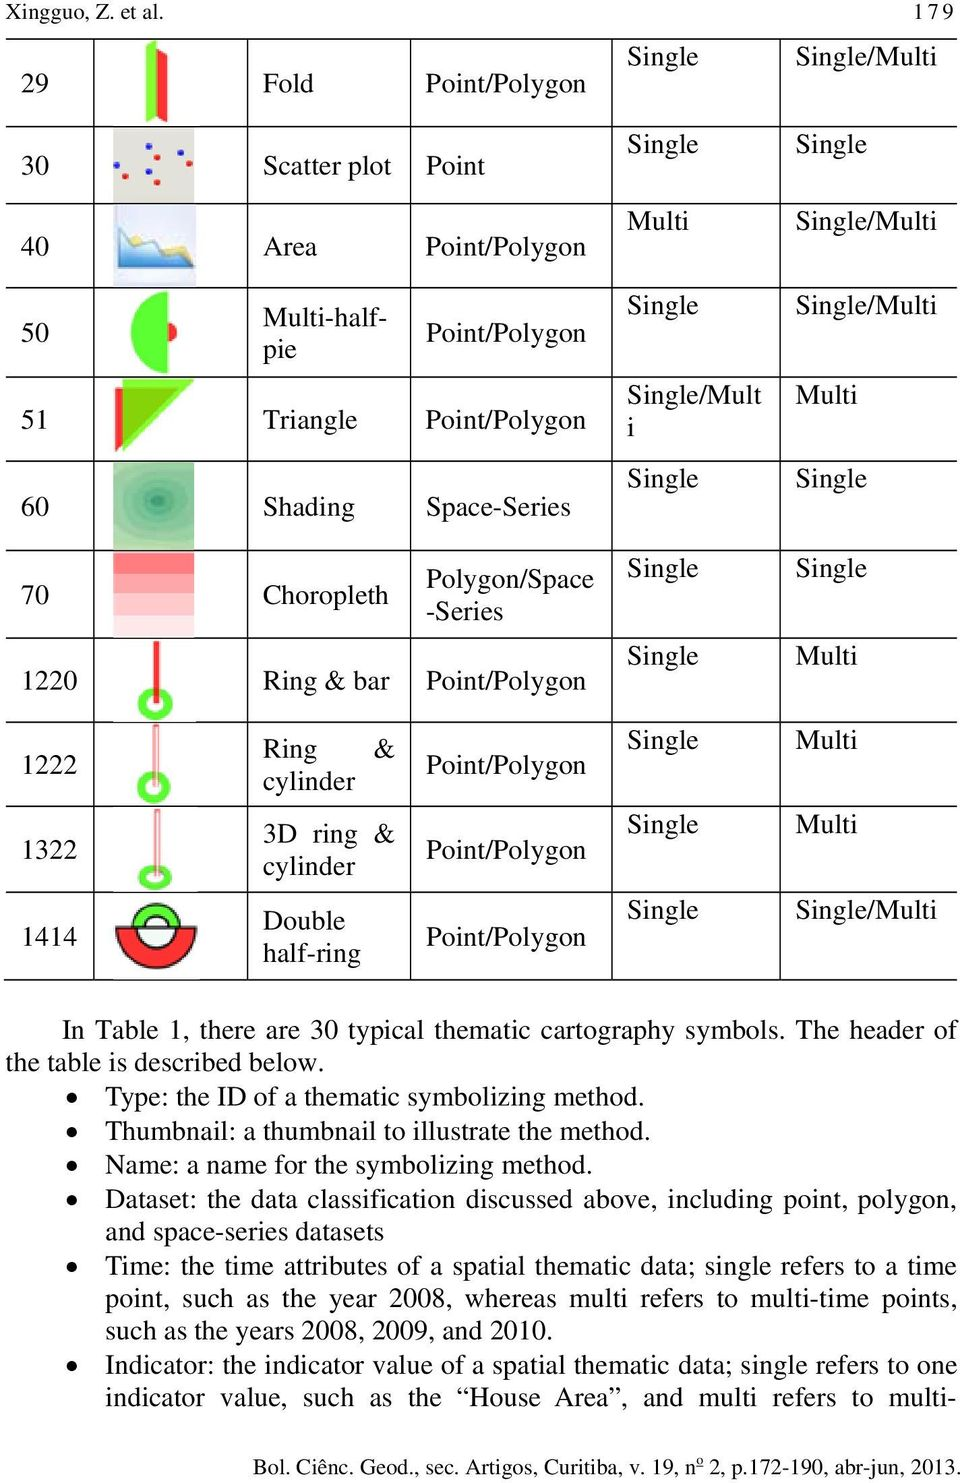 1322 1414 Ring cylinder & 3D ring & cylinder Double half-ring Multi Multi /Multi In Table 1, there are 30 typical thematic cartography symbols. The header of the table is described below.